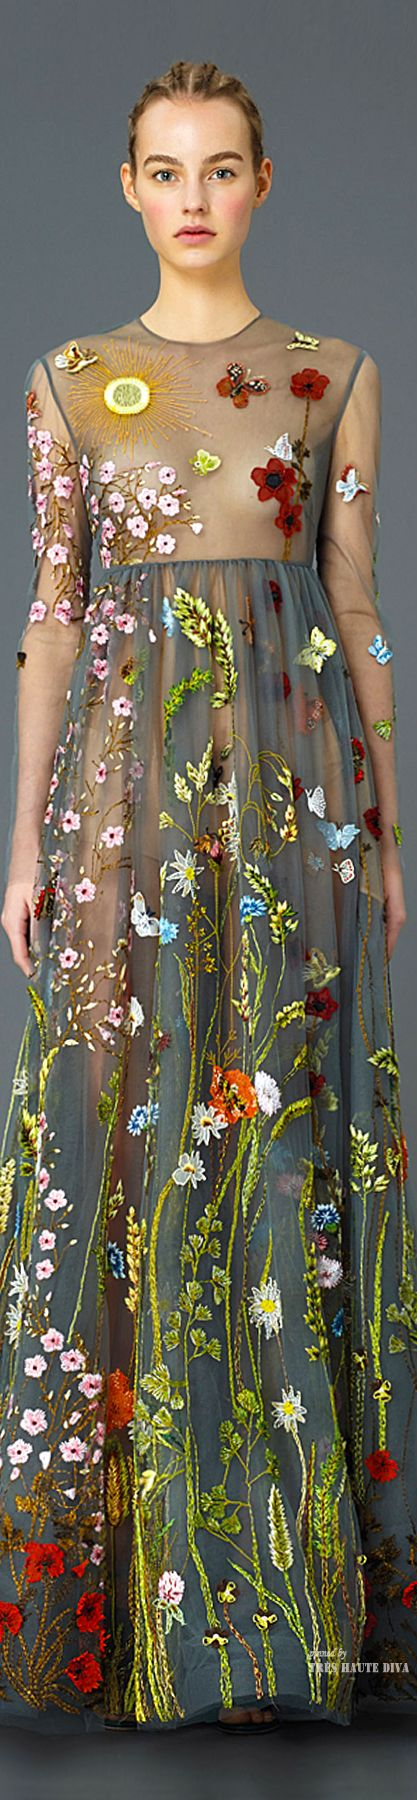 Valentino Pre-Fall 2015 - dress with embroidered flowers & garden motif